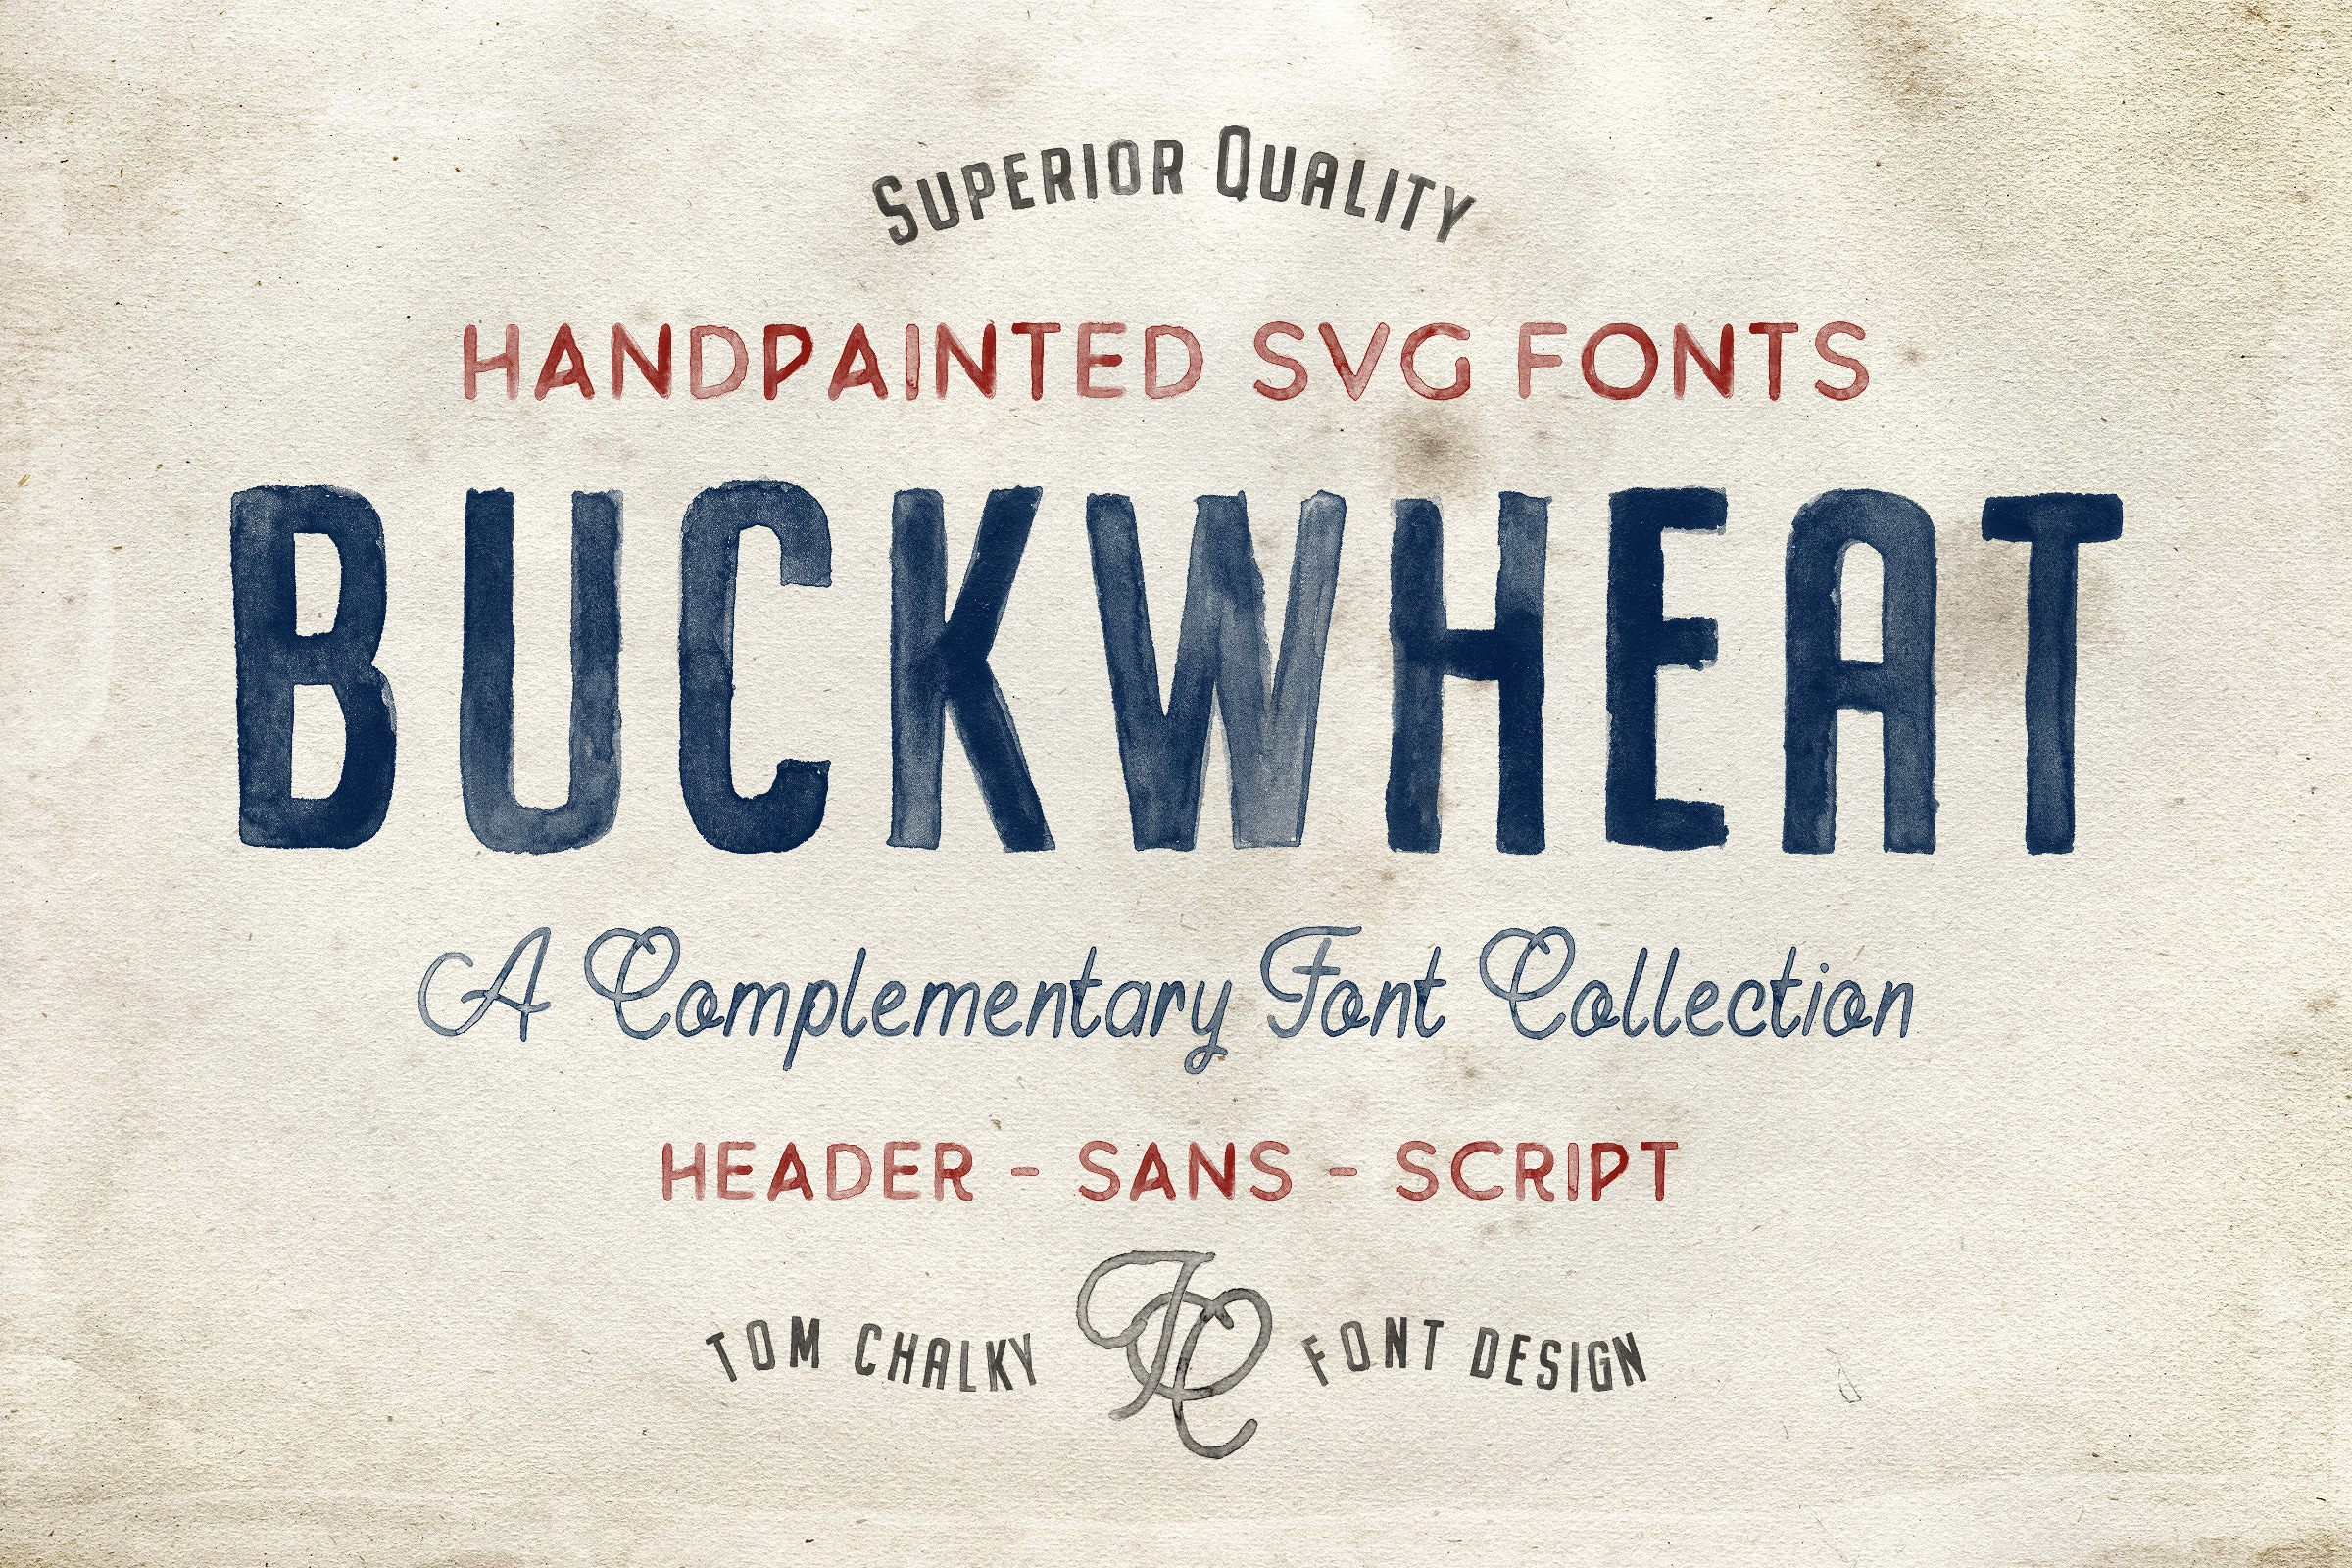 Buckwheat opentype svg fonts collection tom chalky